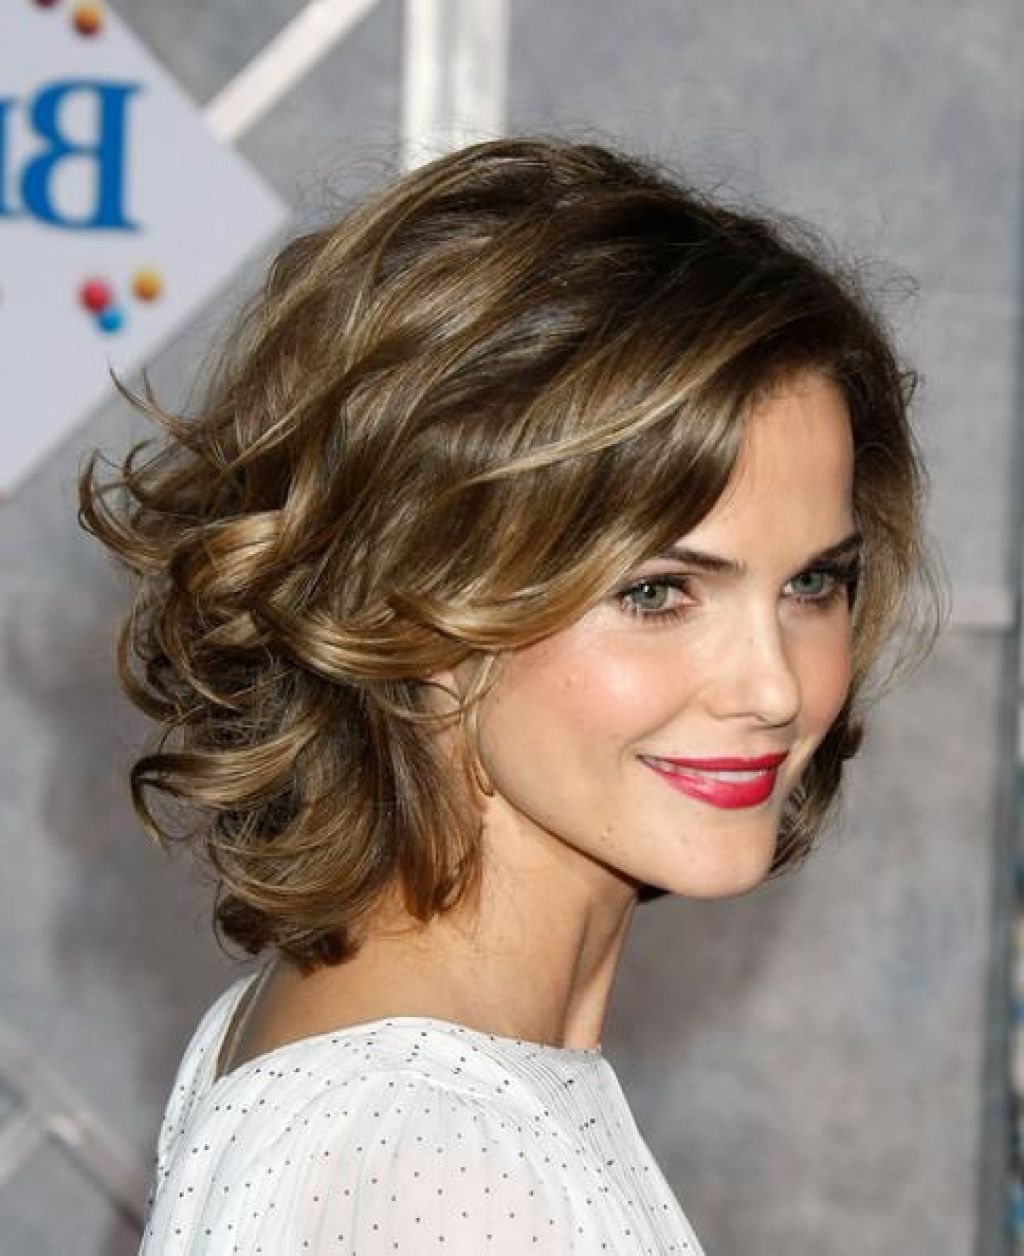 14 Short Hairstyles For Women 2017   Cury-Wavy-Layered – Hairstyles in Haircut For Thick Fine Hair